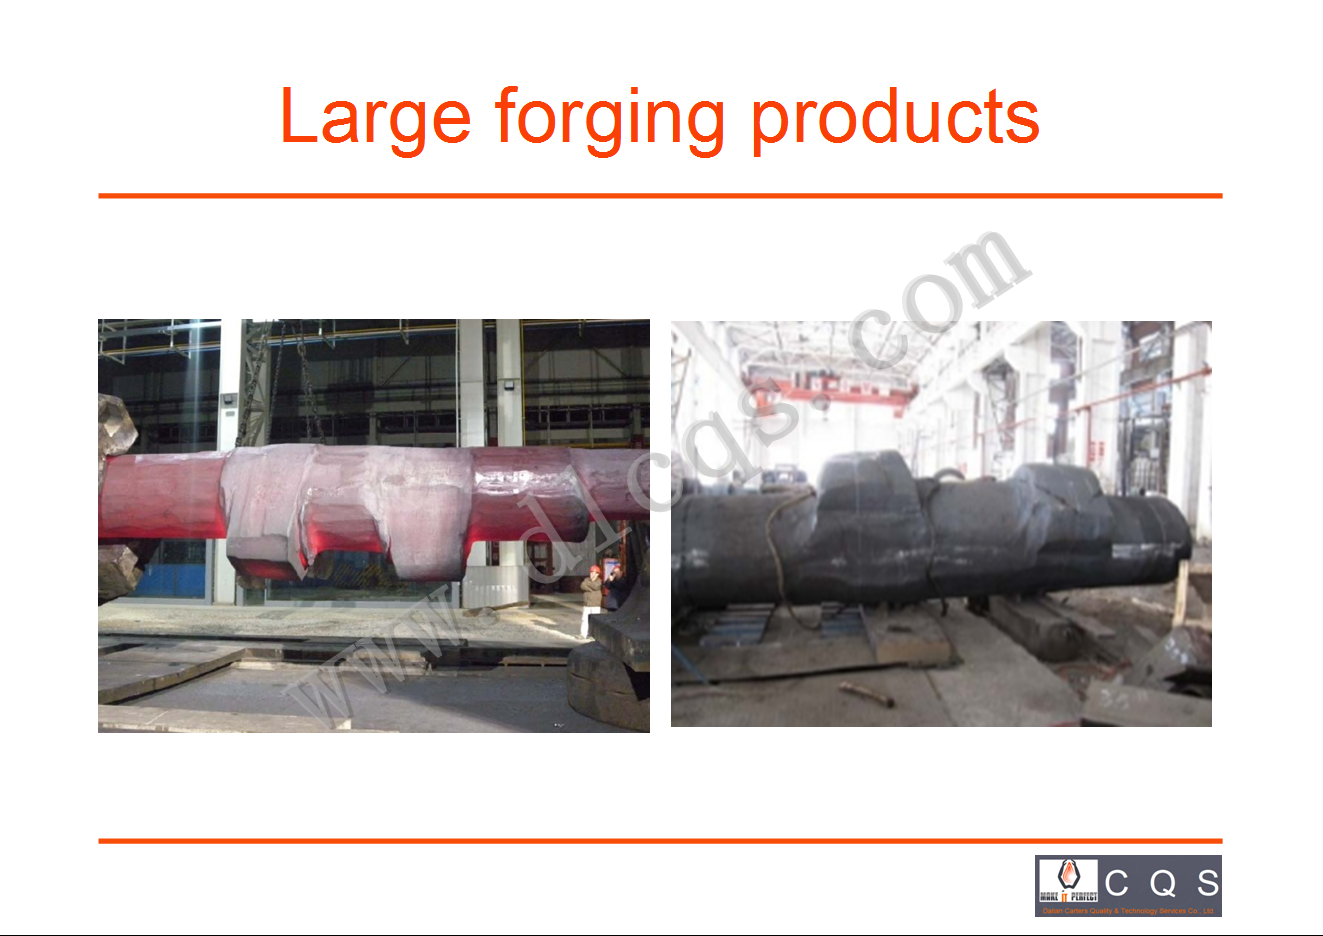 LARGE FORGING PRODUCTS